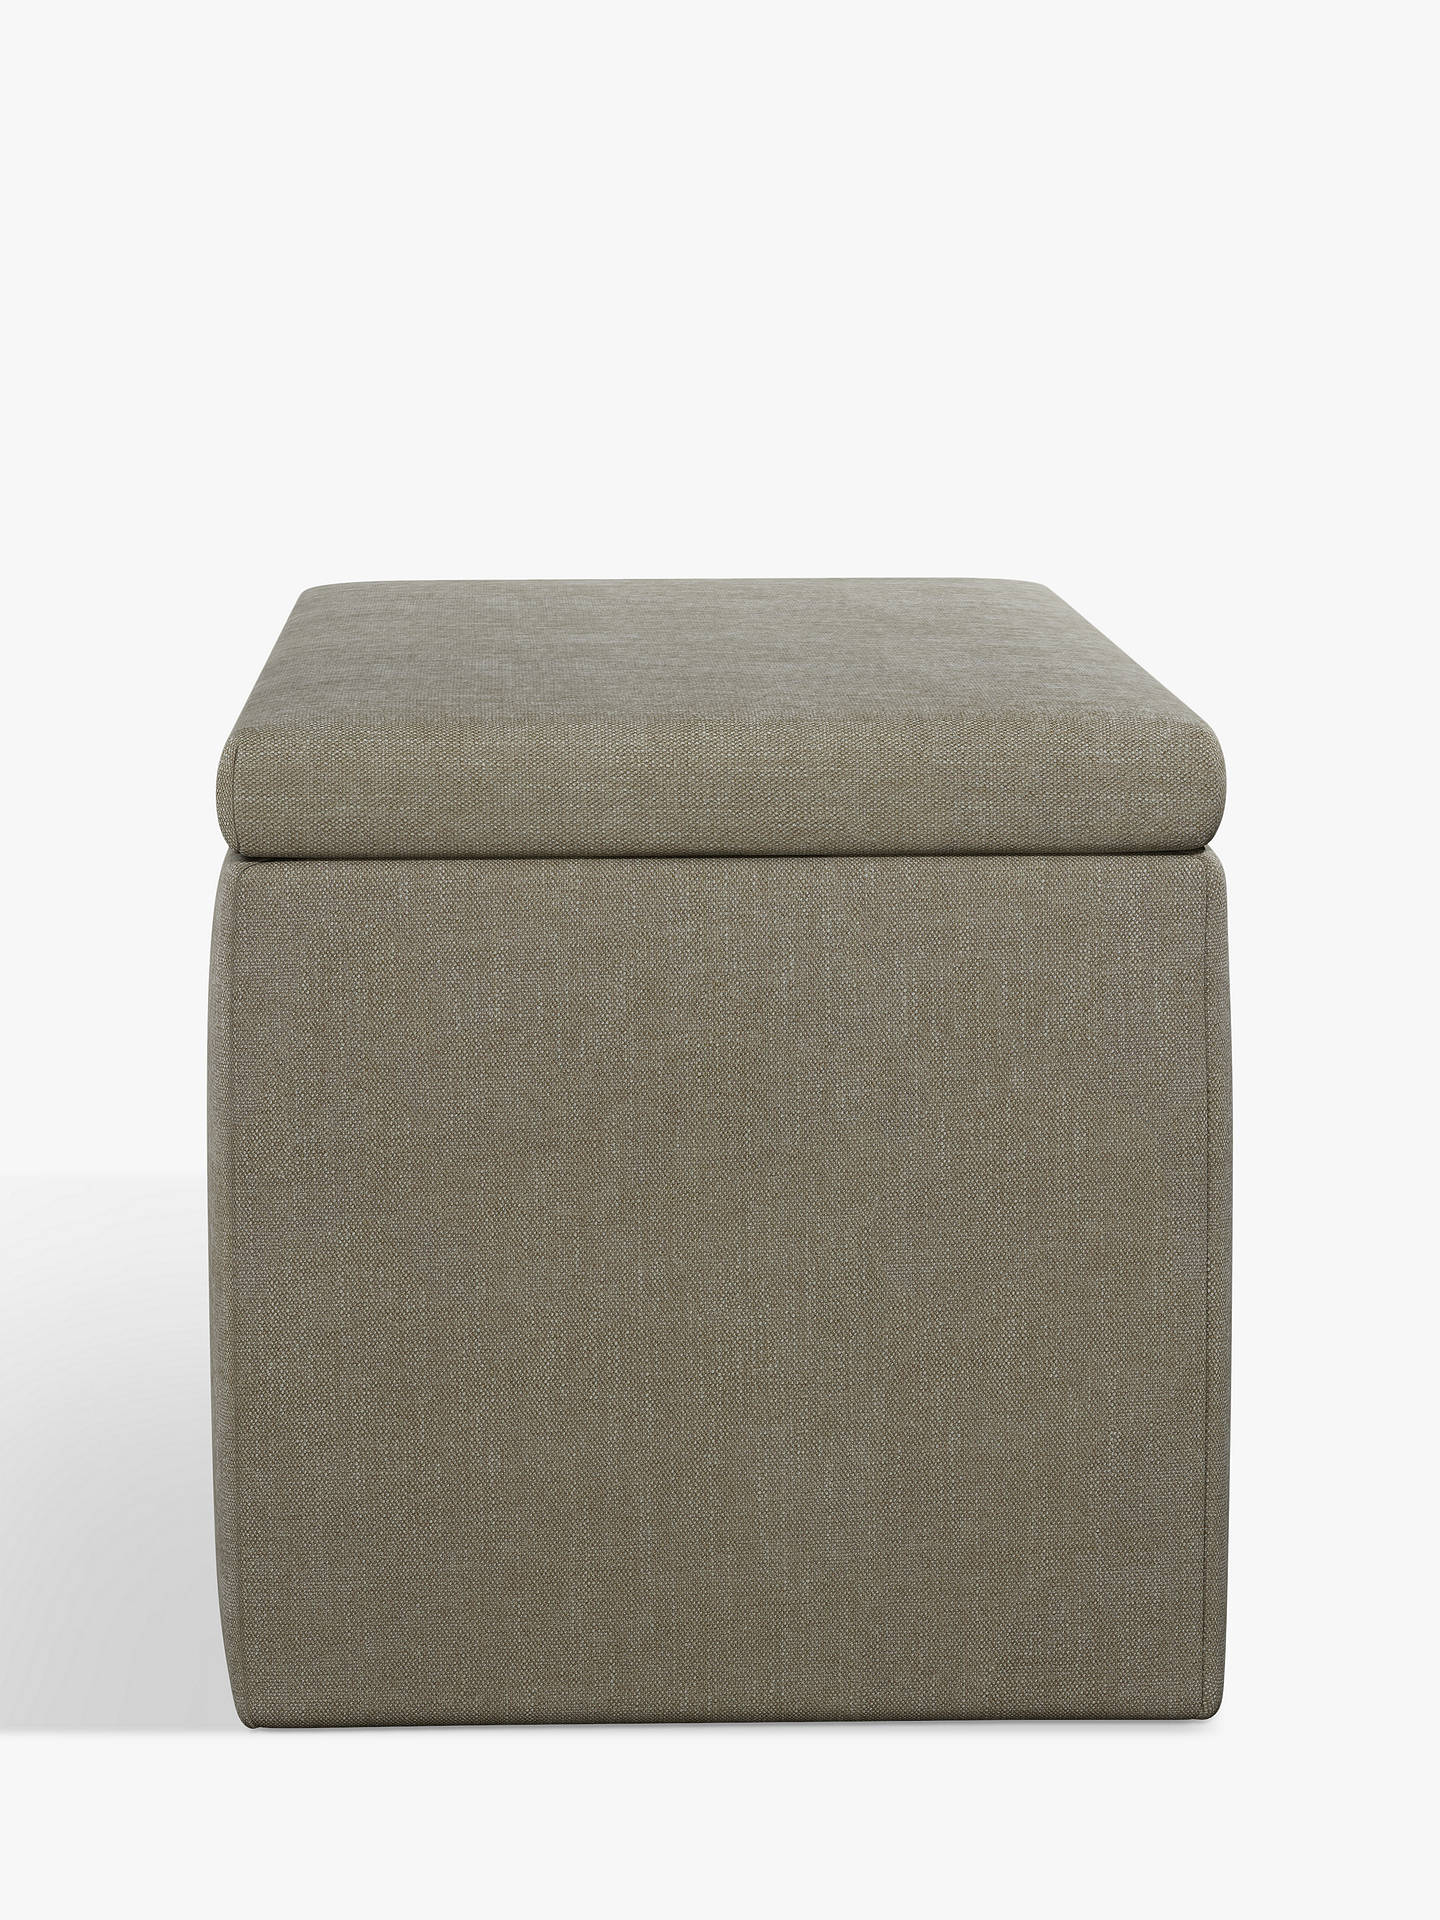 Surprising John Lewis Partners Emily Upholstered Ottoman Storage Box Erin Grey Gmtry Best Dining Table And Chair Ideas Images Gmtryco